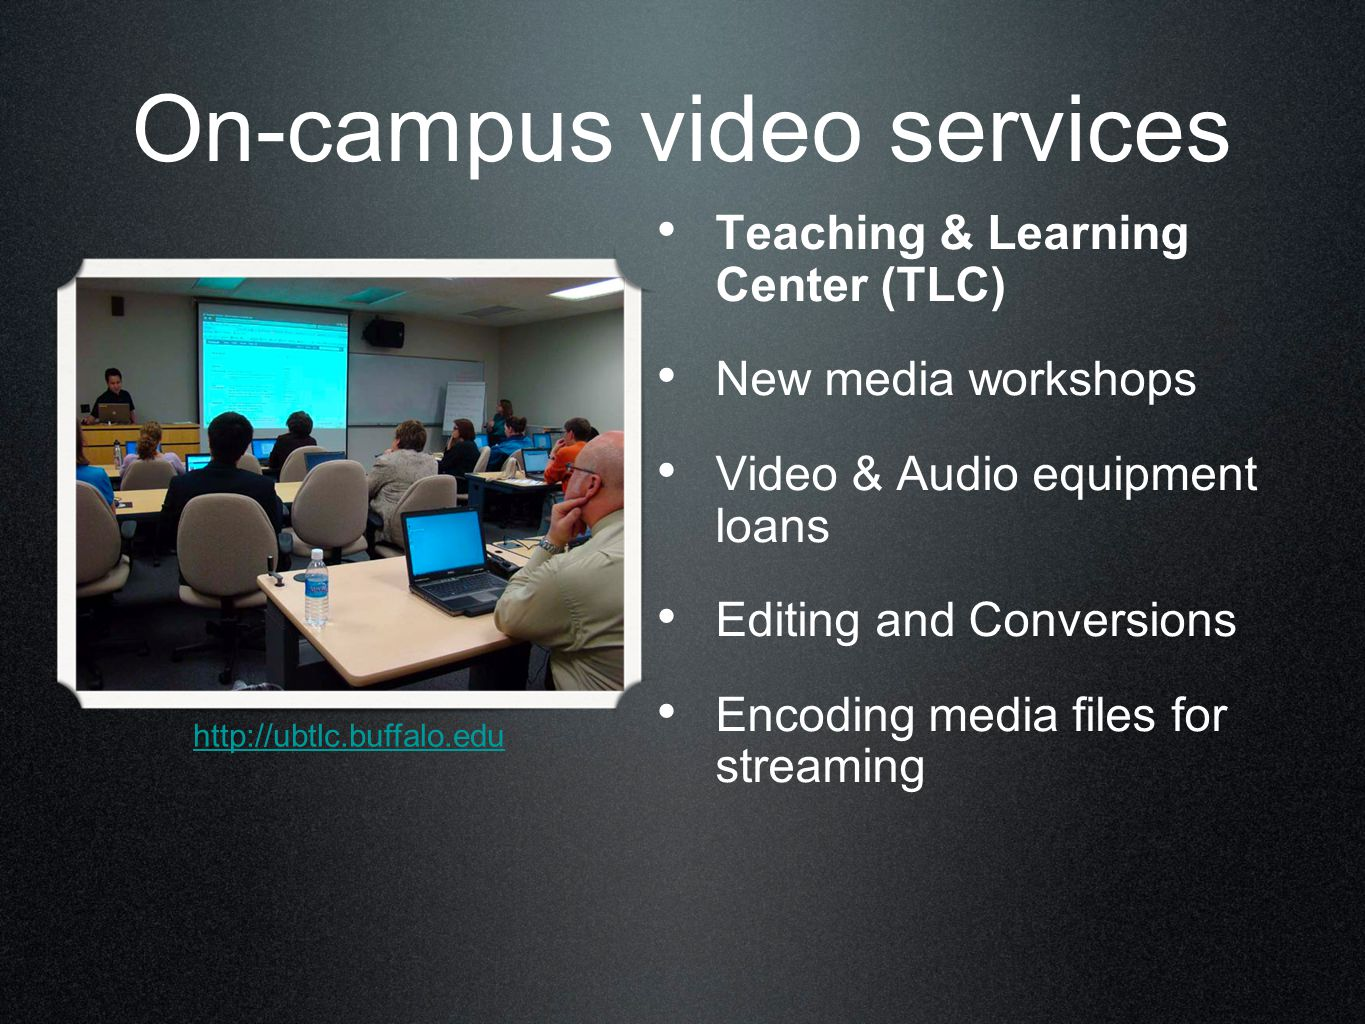 On-campus video services Teaching & Learning Center (TLC) New media workshops Video & Audio equipment loans Editing and Conversions Encoding media files for streaming http://ubtlc.buffalo.edu